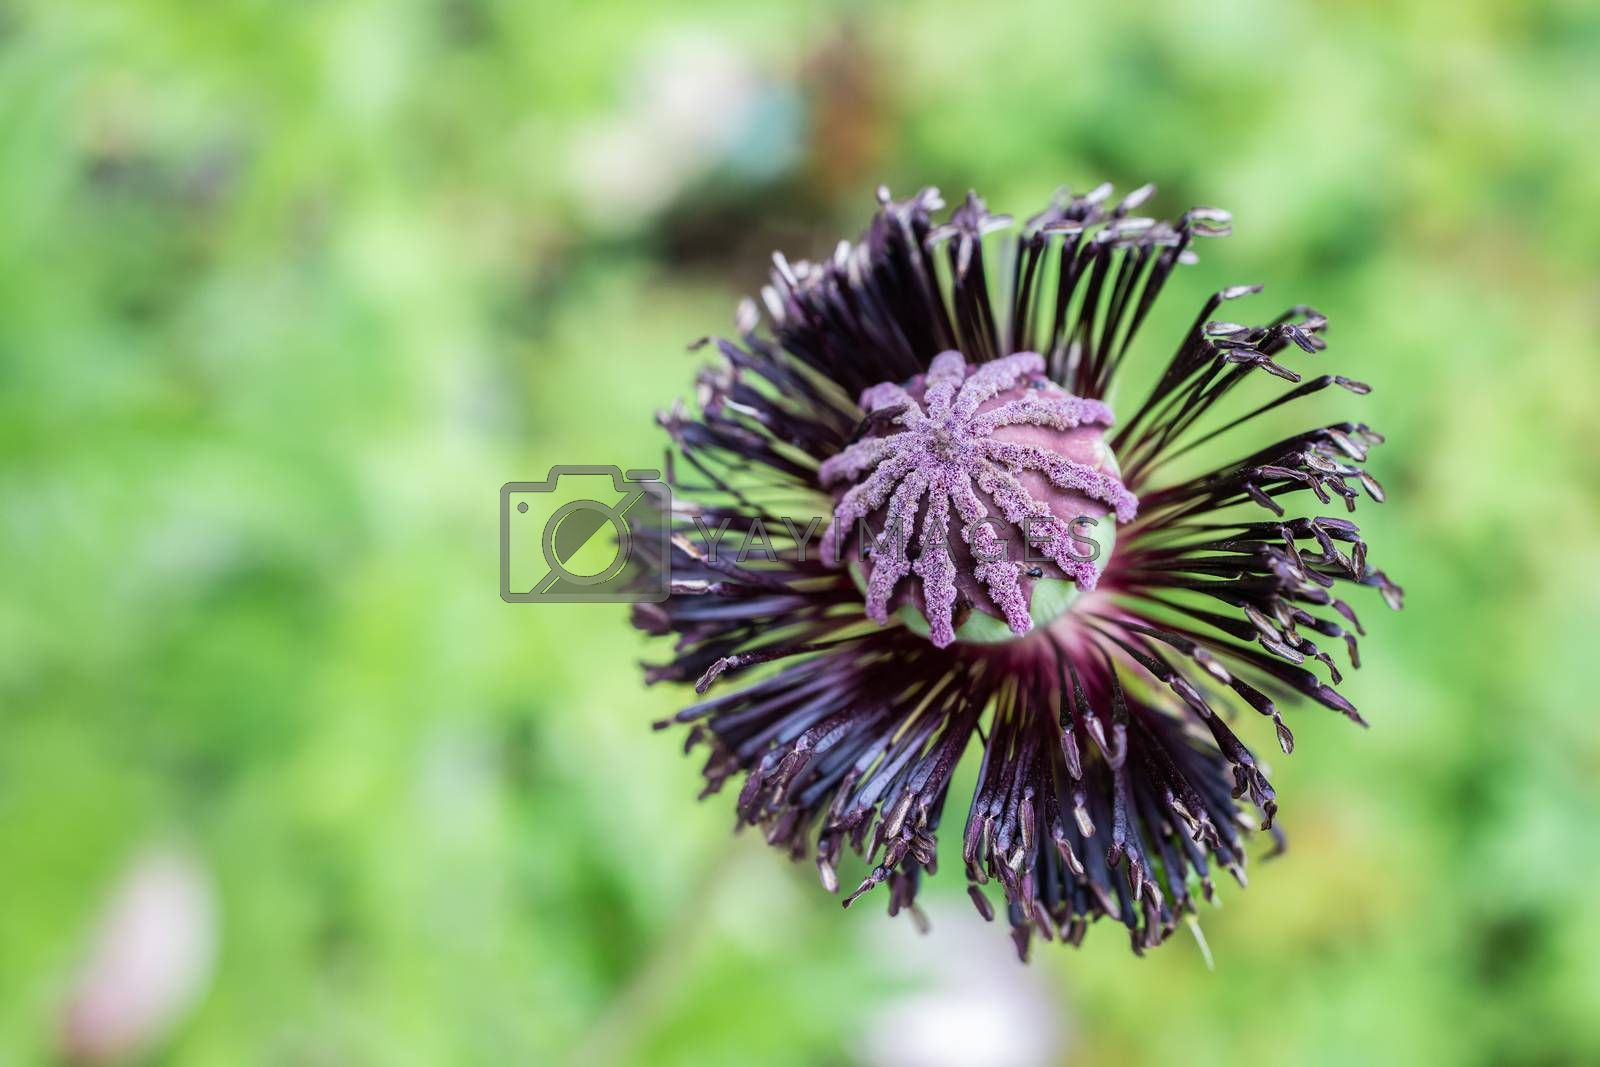 Royalty free image of Close Up View of A Poppy Seed Pod by kstphotography